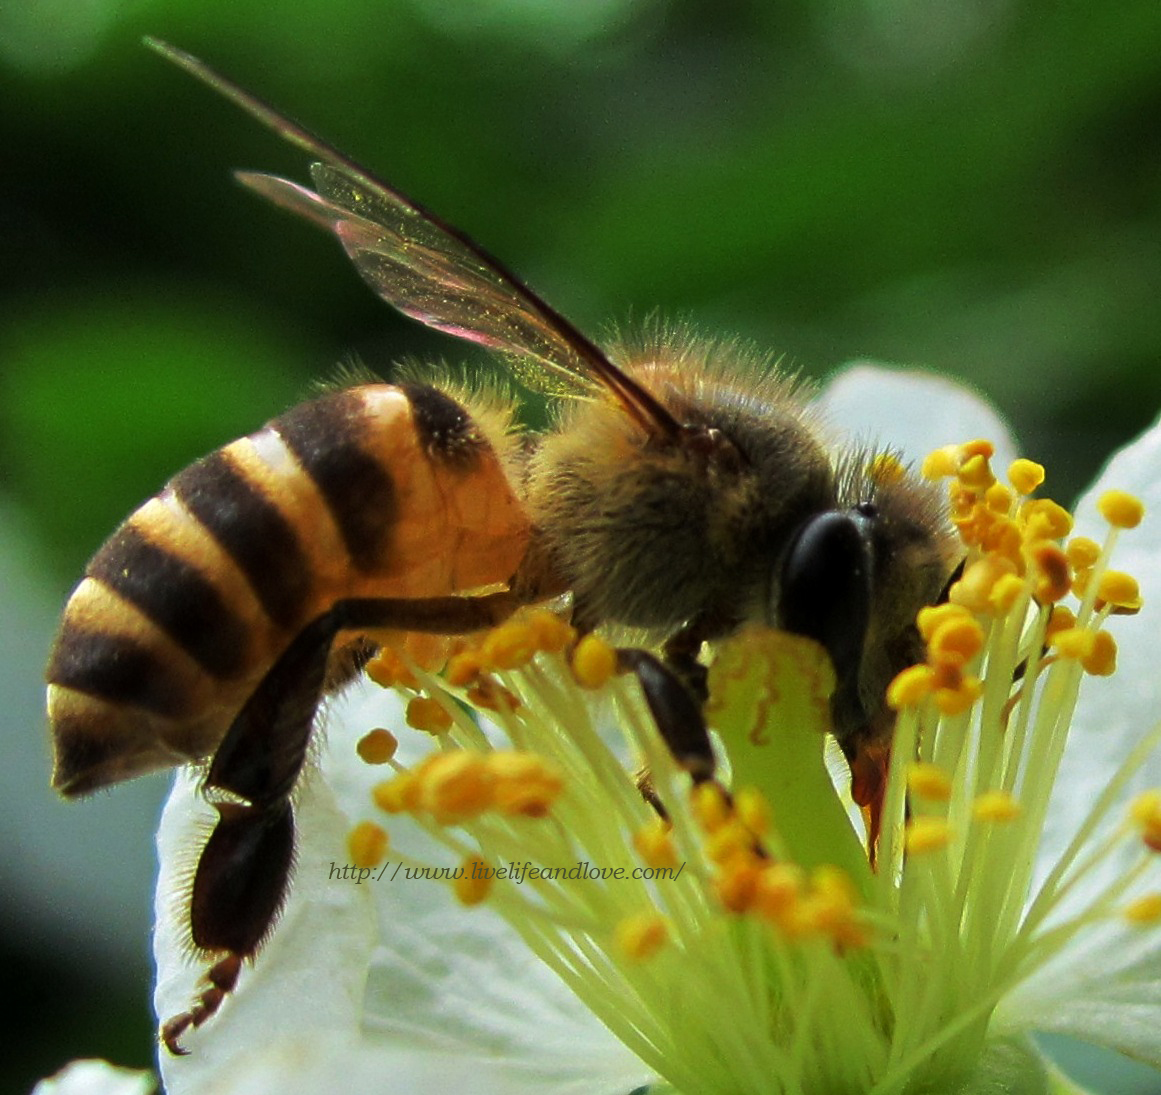 bees in the philippines